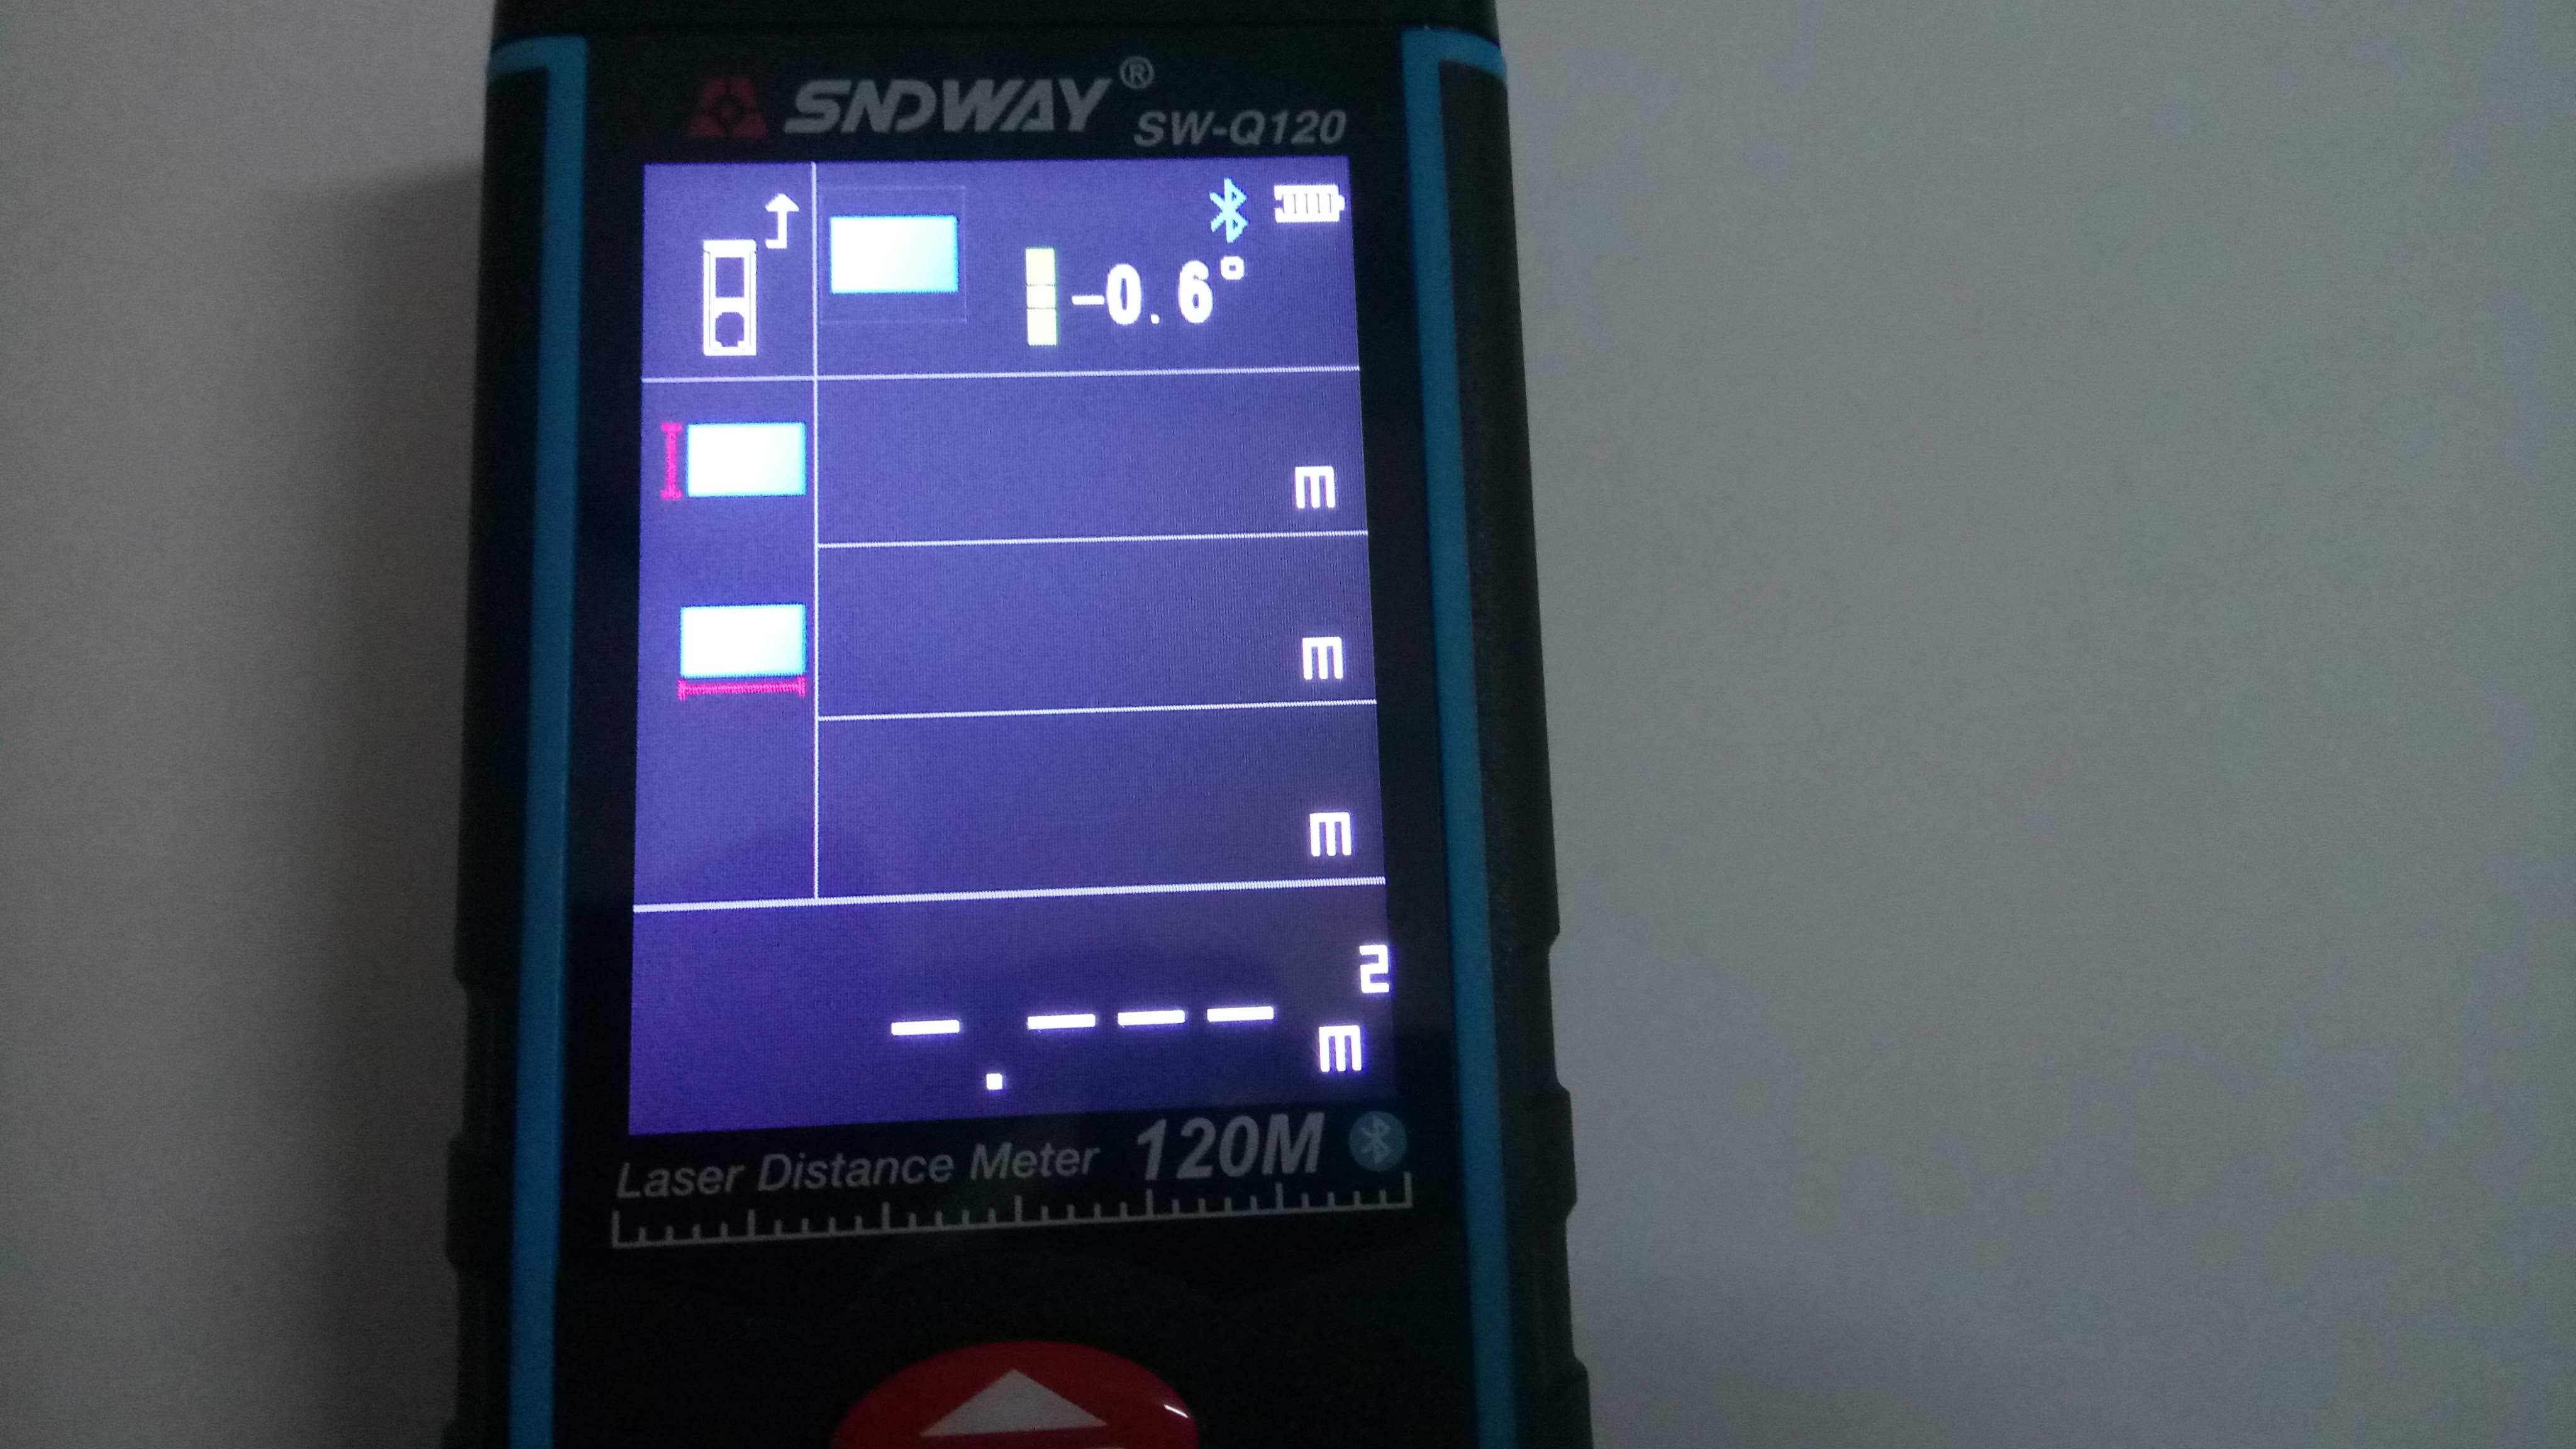 may-do-khoang-cach-laser-sndway-sw-q120